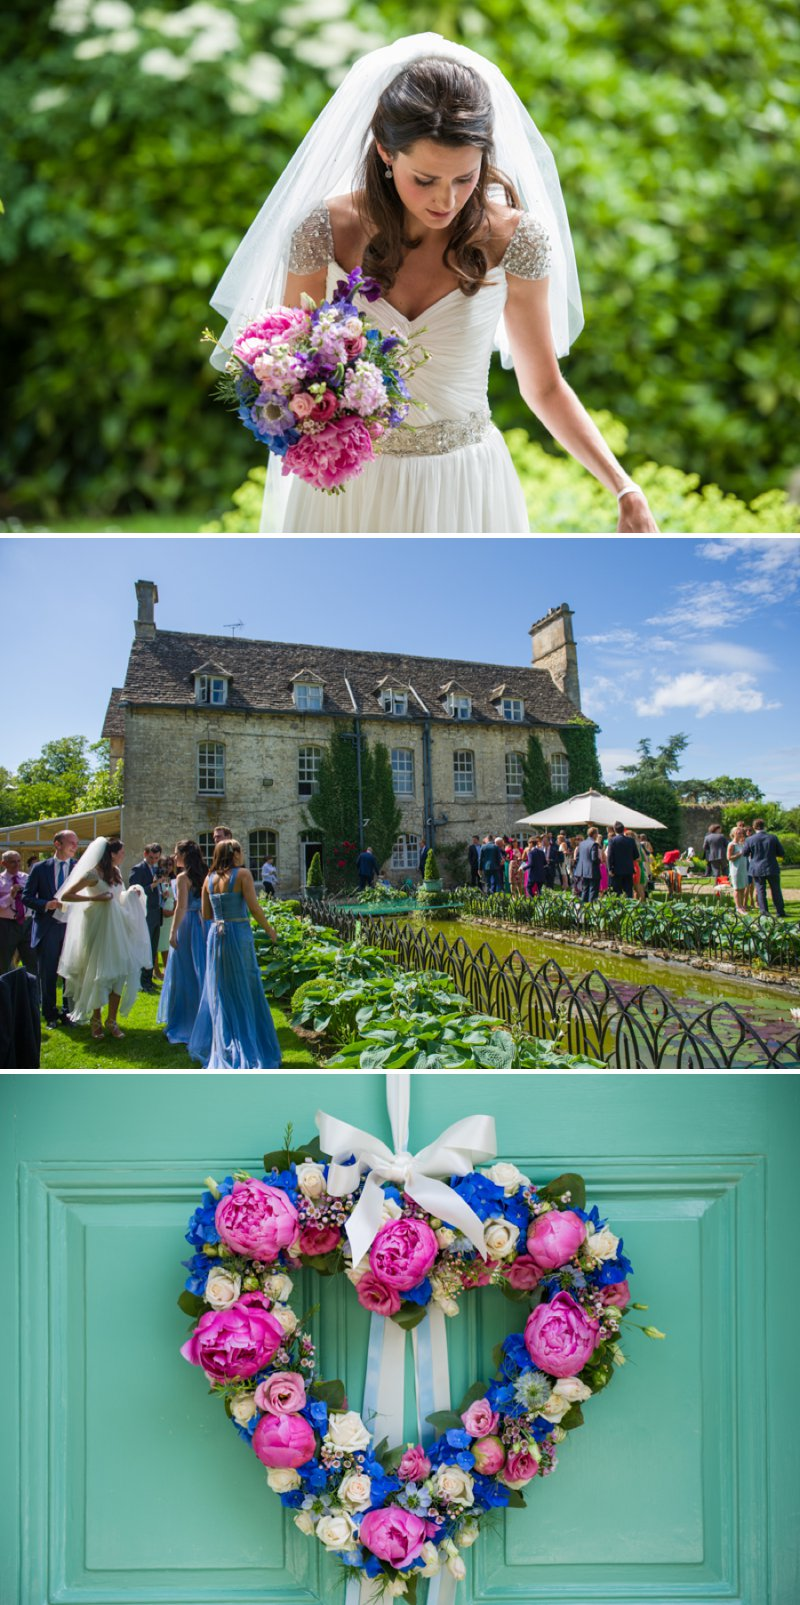 Traditional White Wedding At The Rectory In Wiltshire With Bride In Bespoke Gown And Vibrant Blue Hydrangeas And Hot Pink Peonies In Wedding Flowers 1